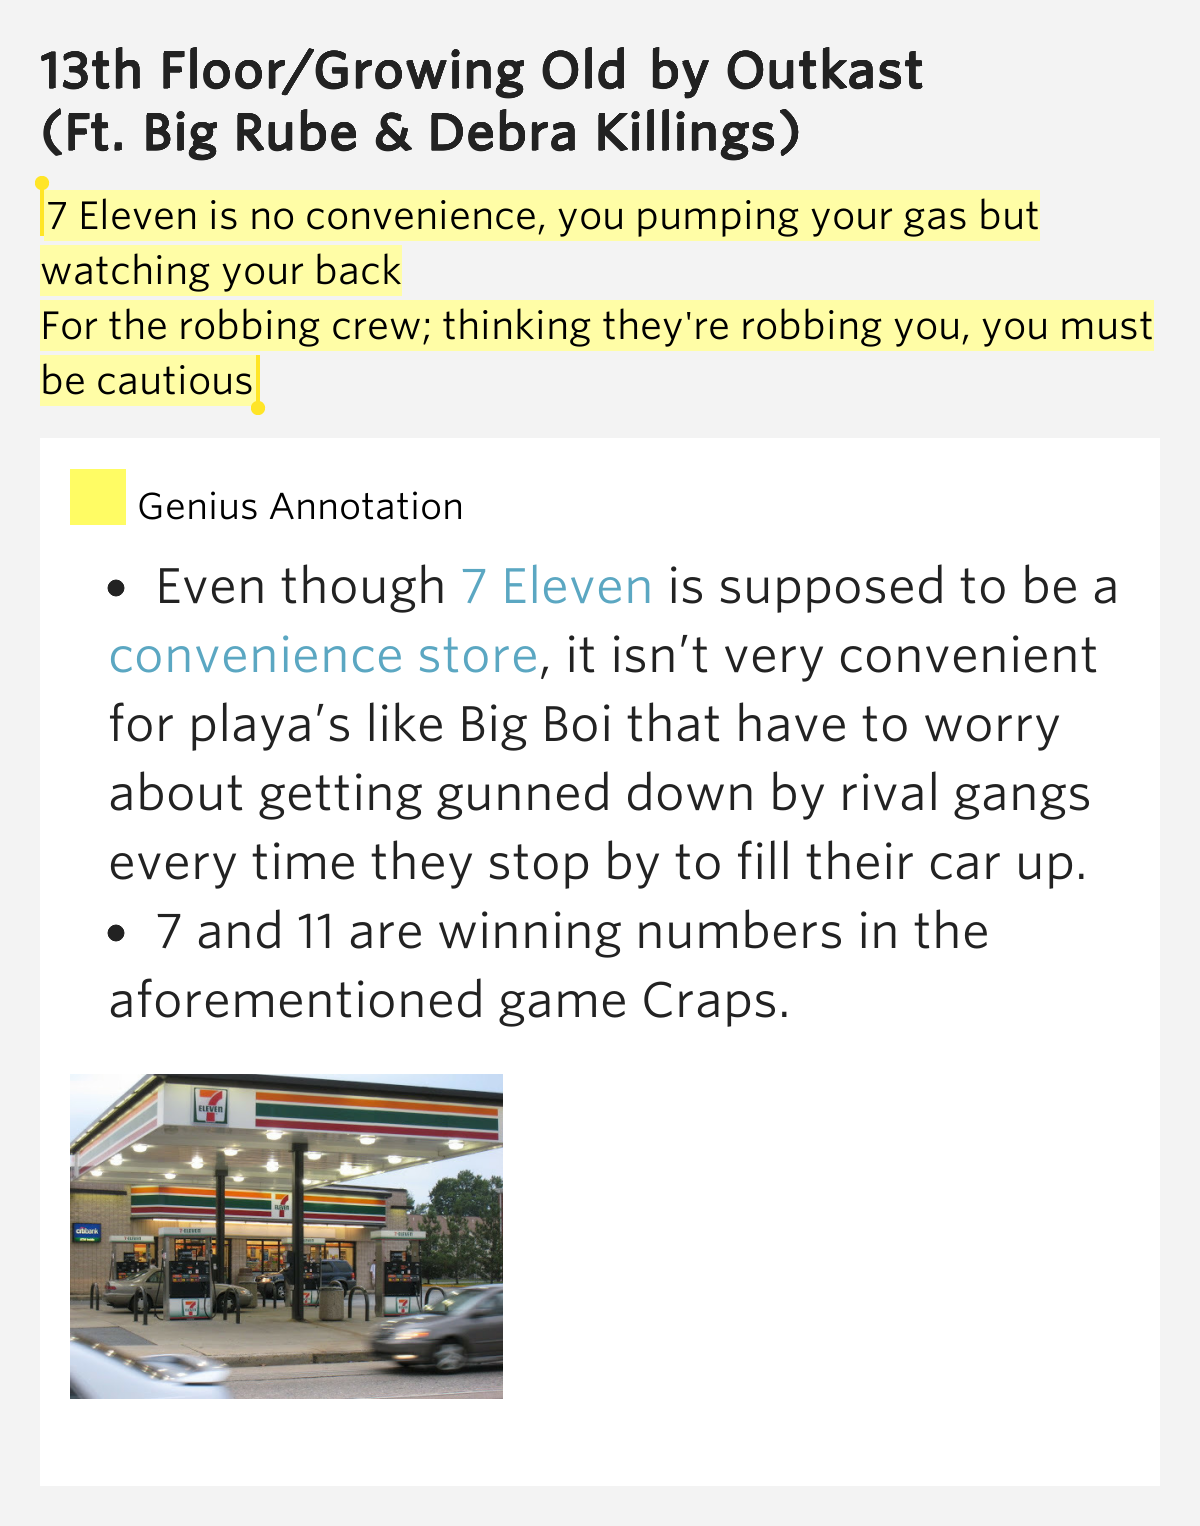 7 eleven is no convenience you pumping 13th floor for 13th floor growing old